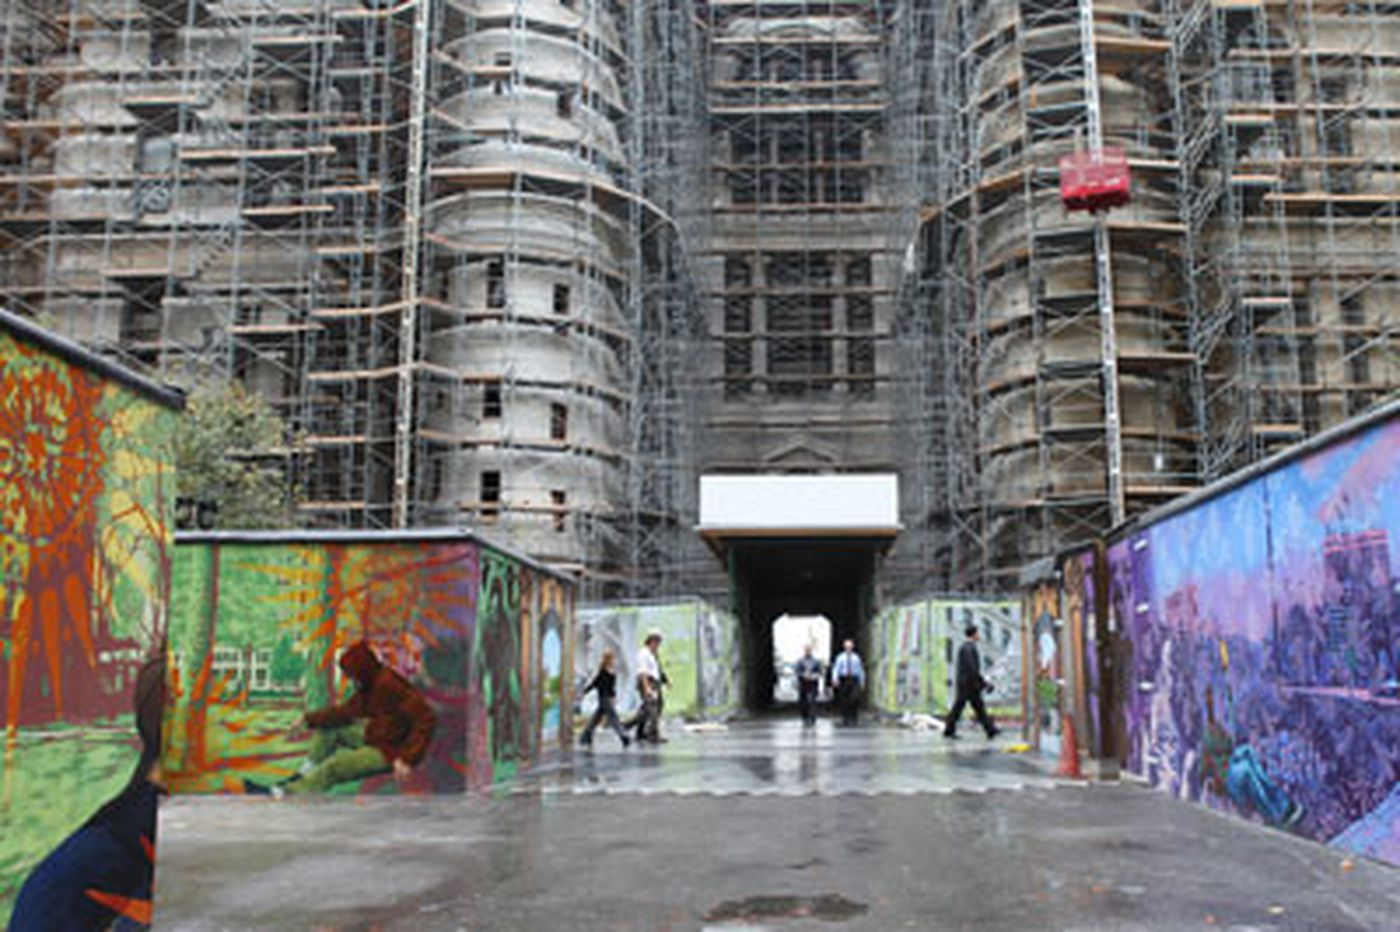 Artwork spruces up City Hall construction zone